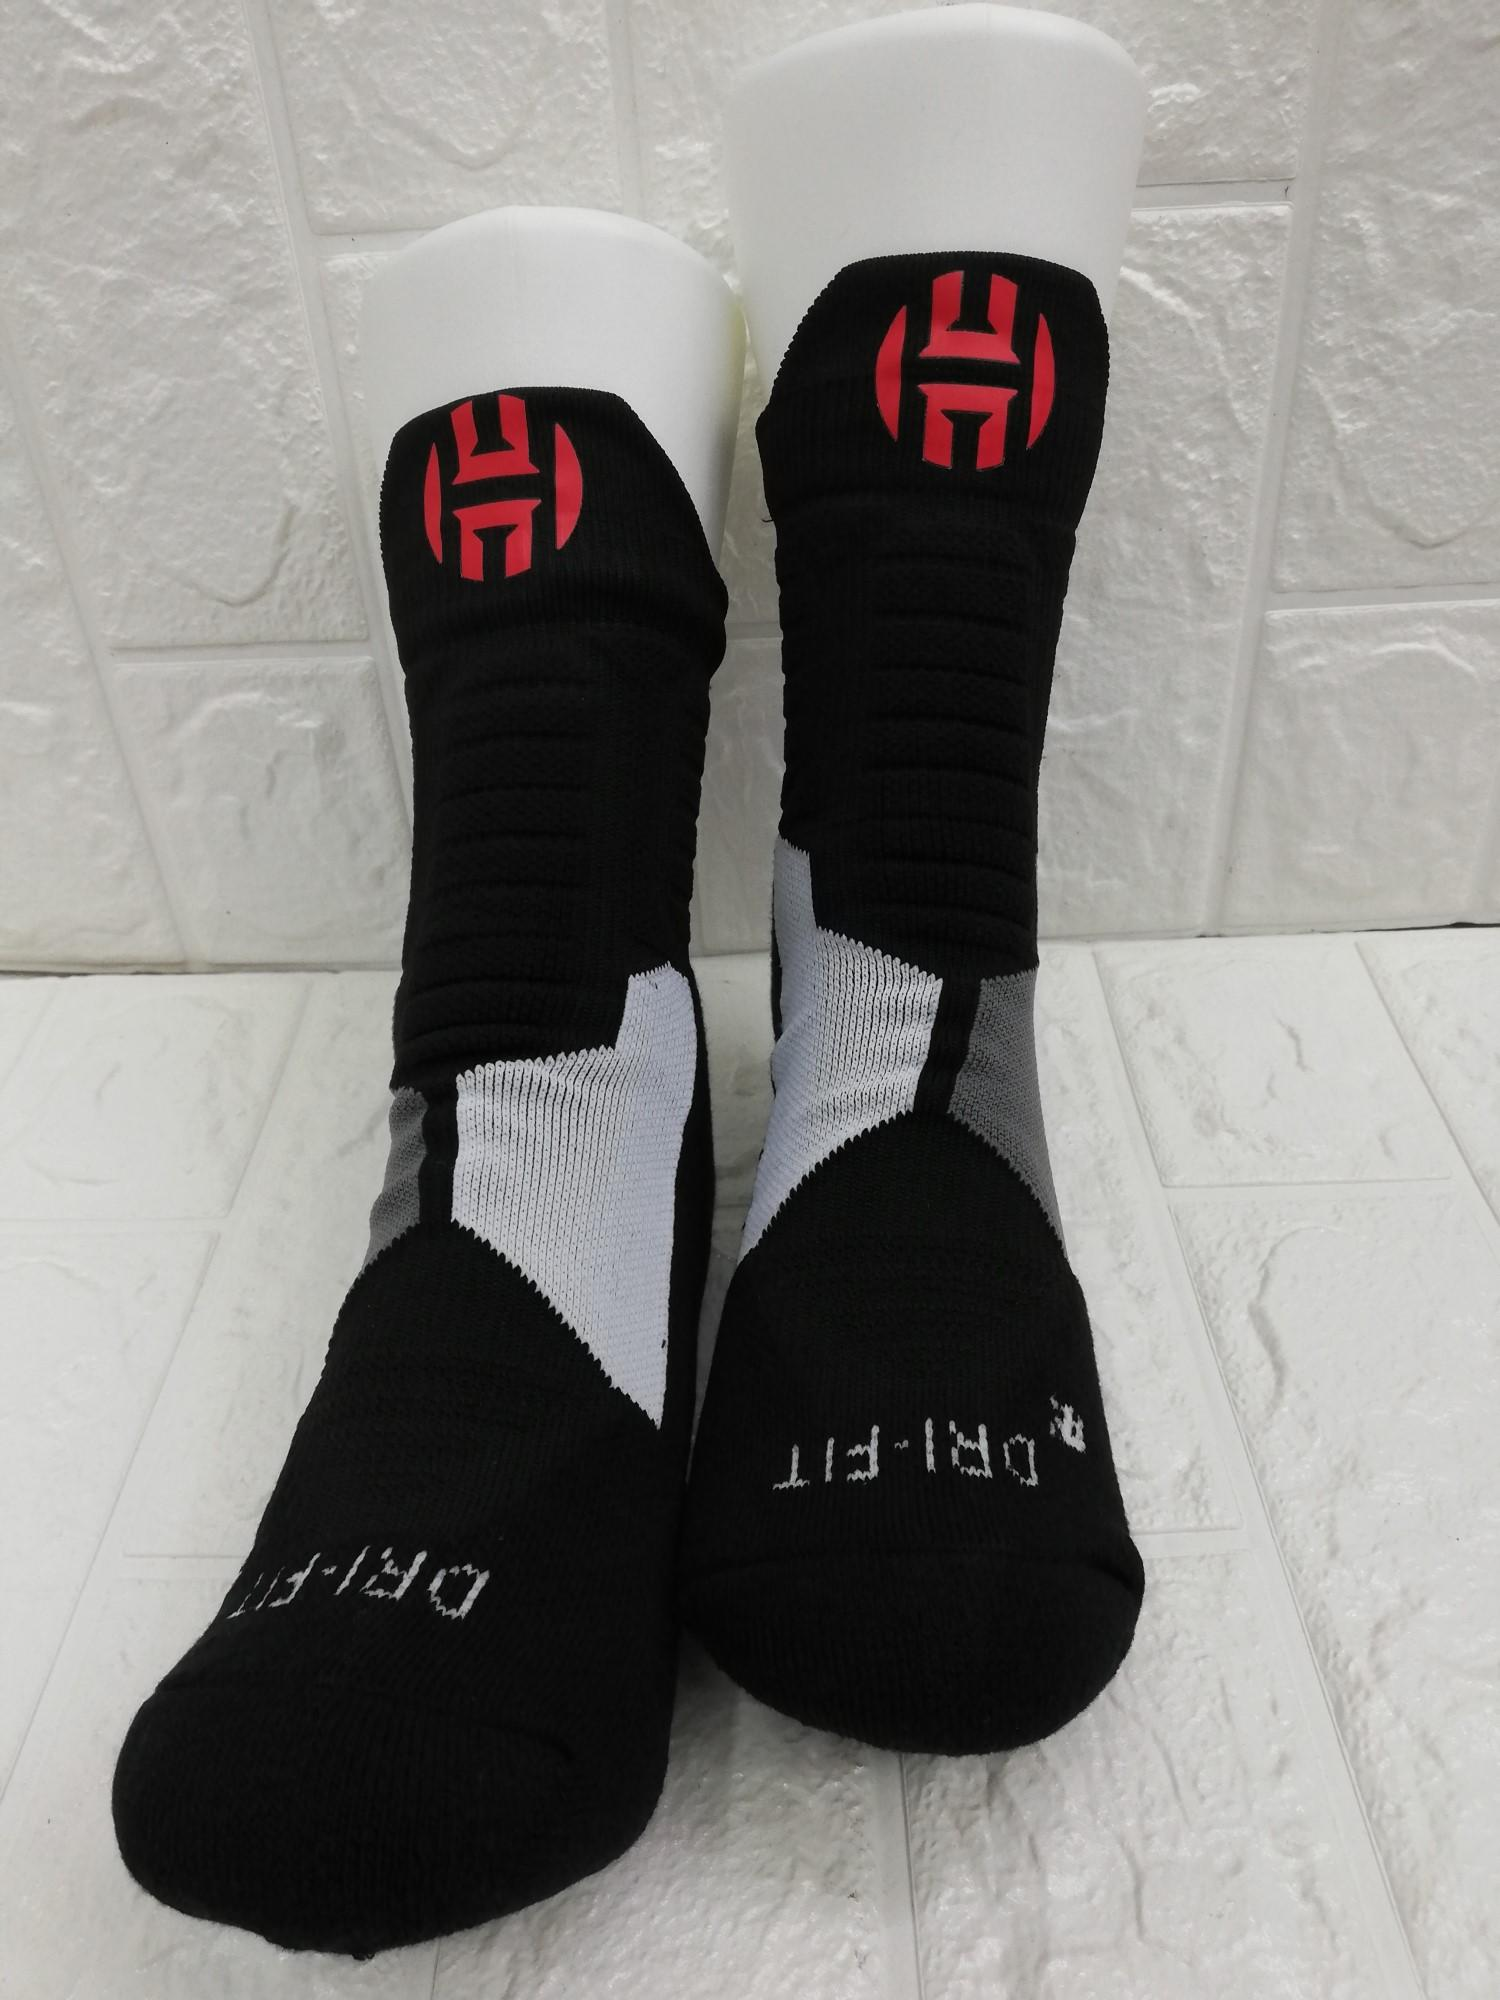 Nba Elite Basketball Socks No Ratings By Rashguard&drifit Sportswear Online Shop.